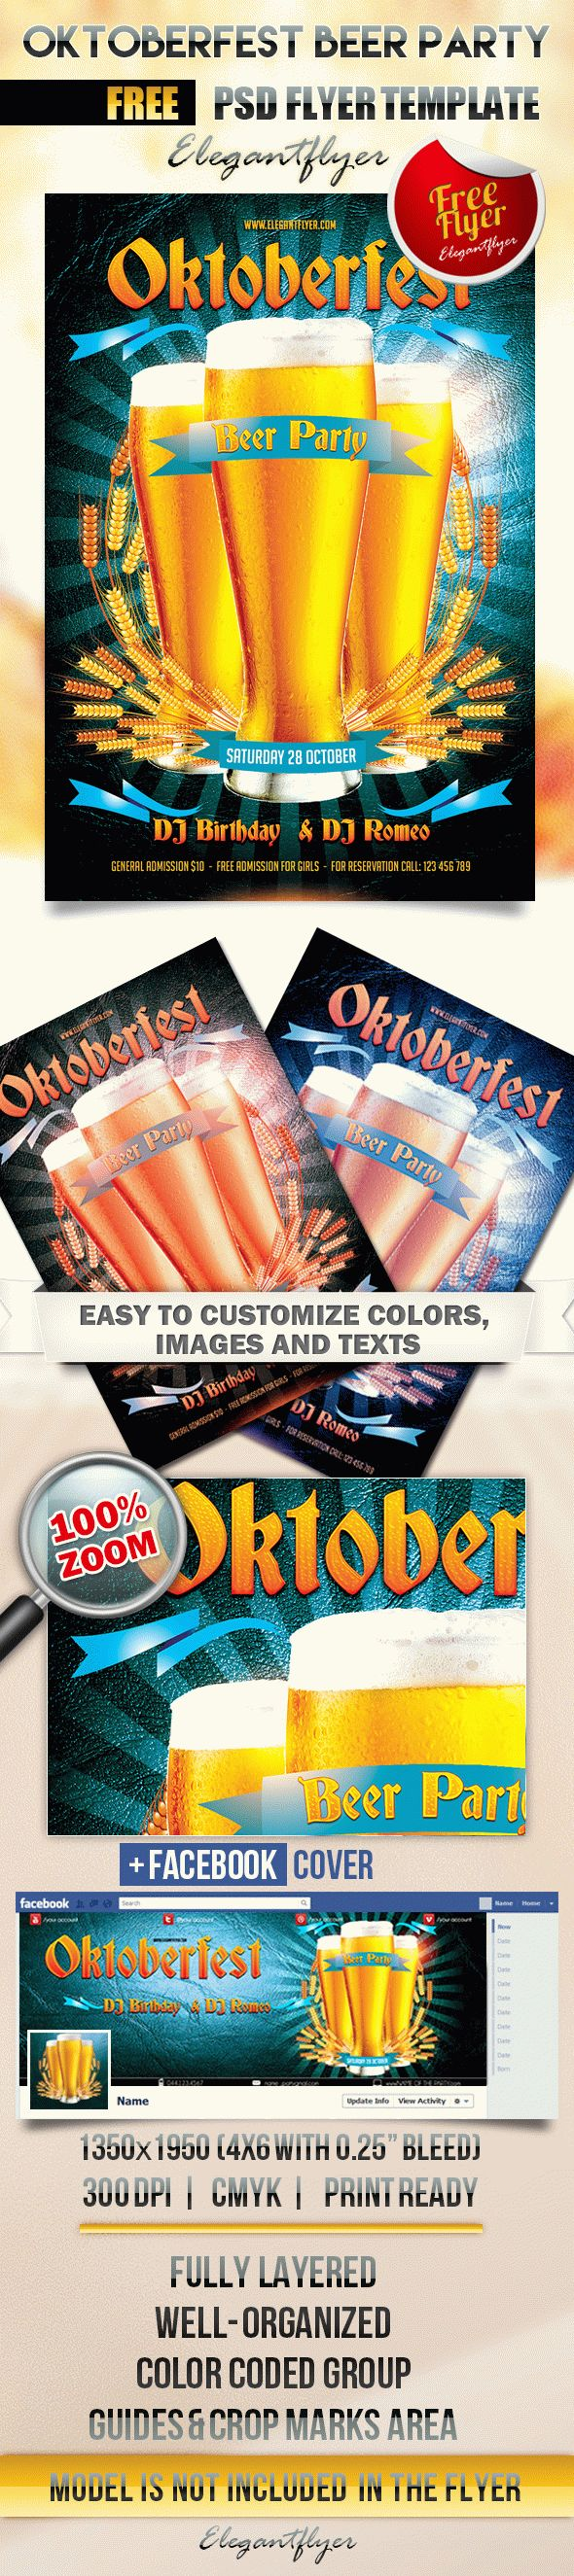 Oktoberfest Beer Party – Flyer PSD Template + Facebook Cover